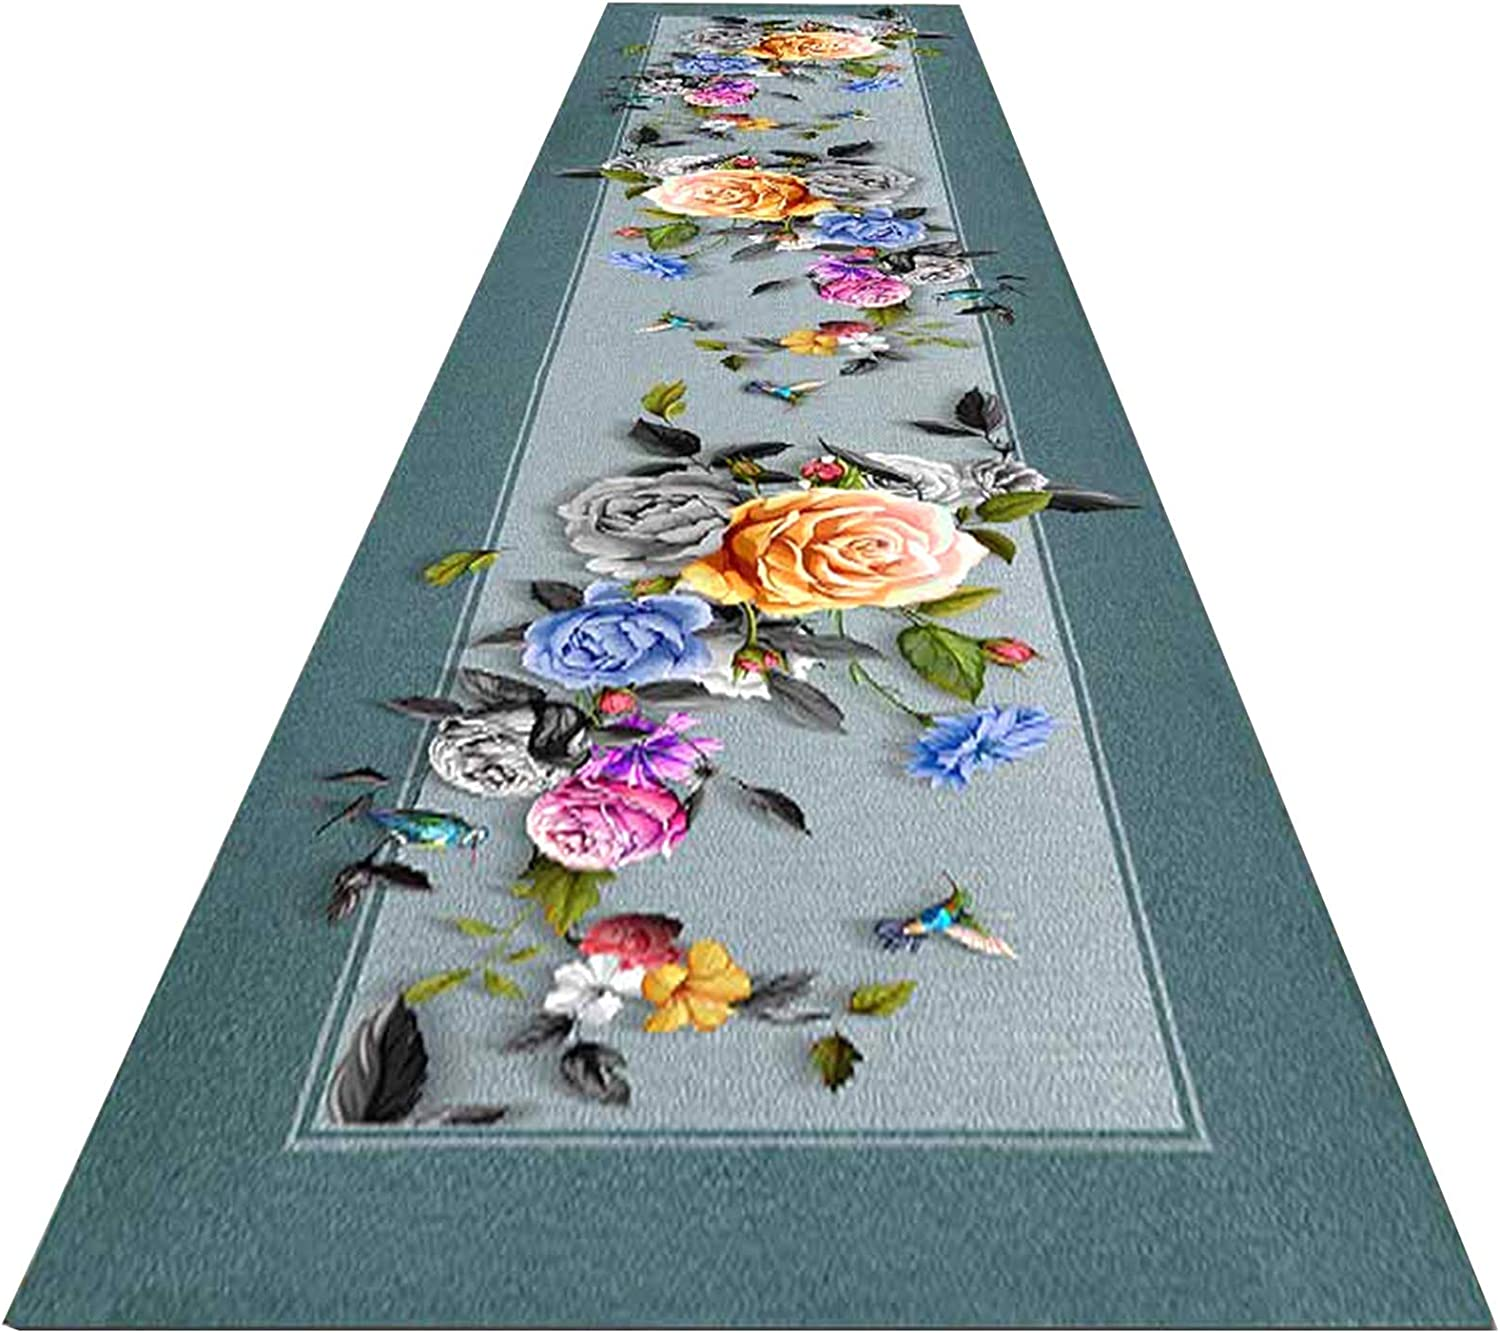 Over item Outlet sale feature handling Traditional Area Rug with Blue Floral C Pattern Runner Non Slip